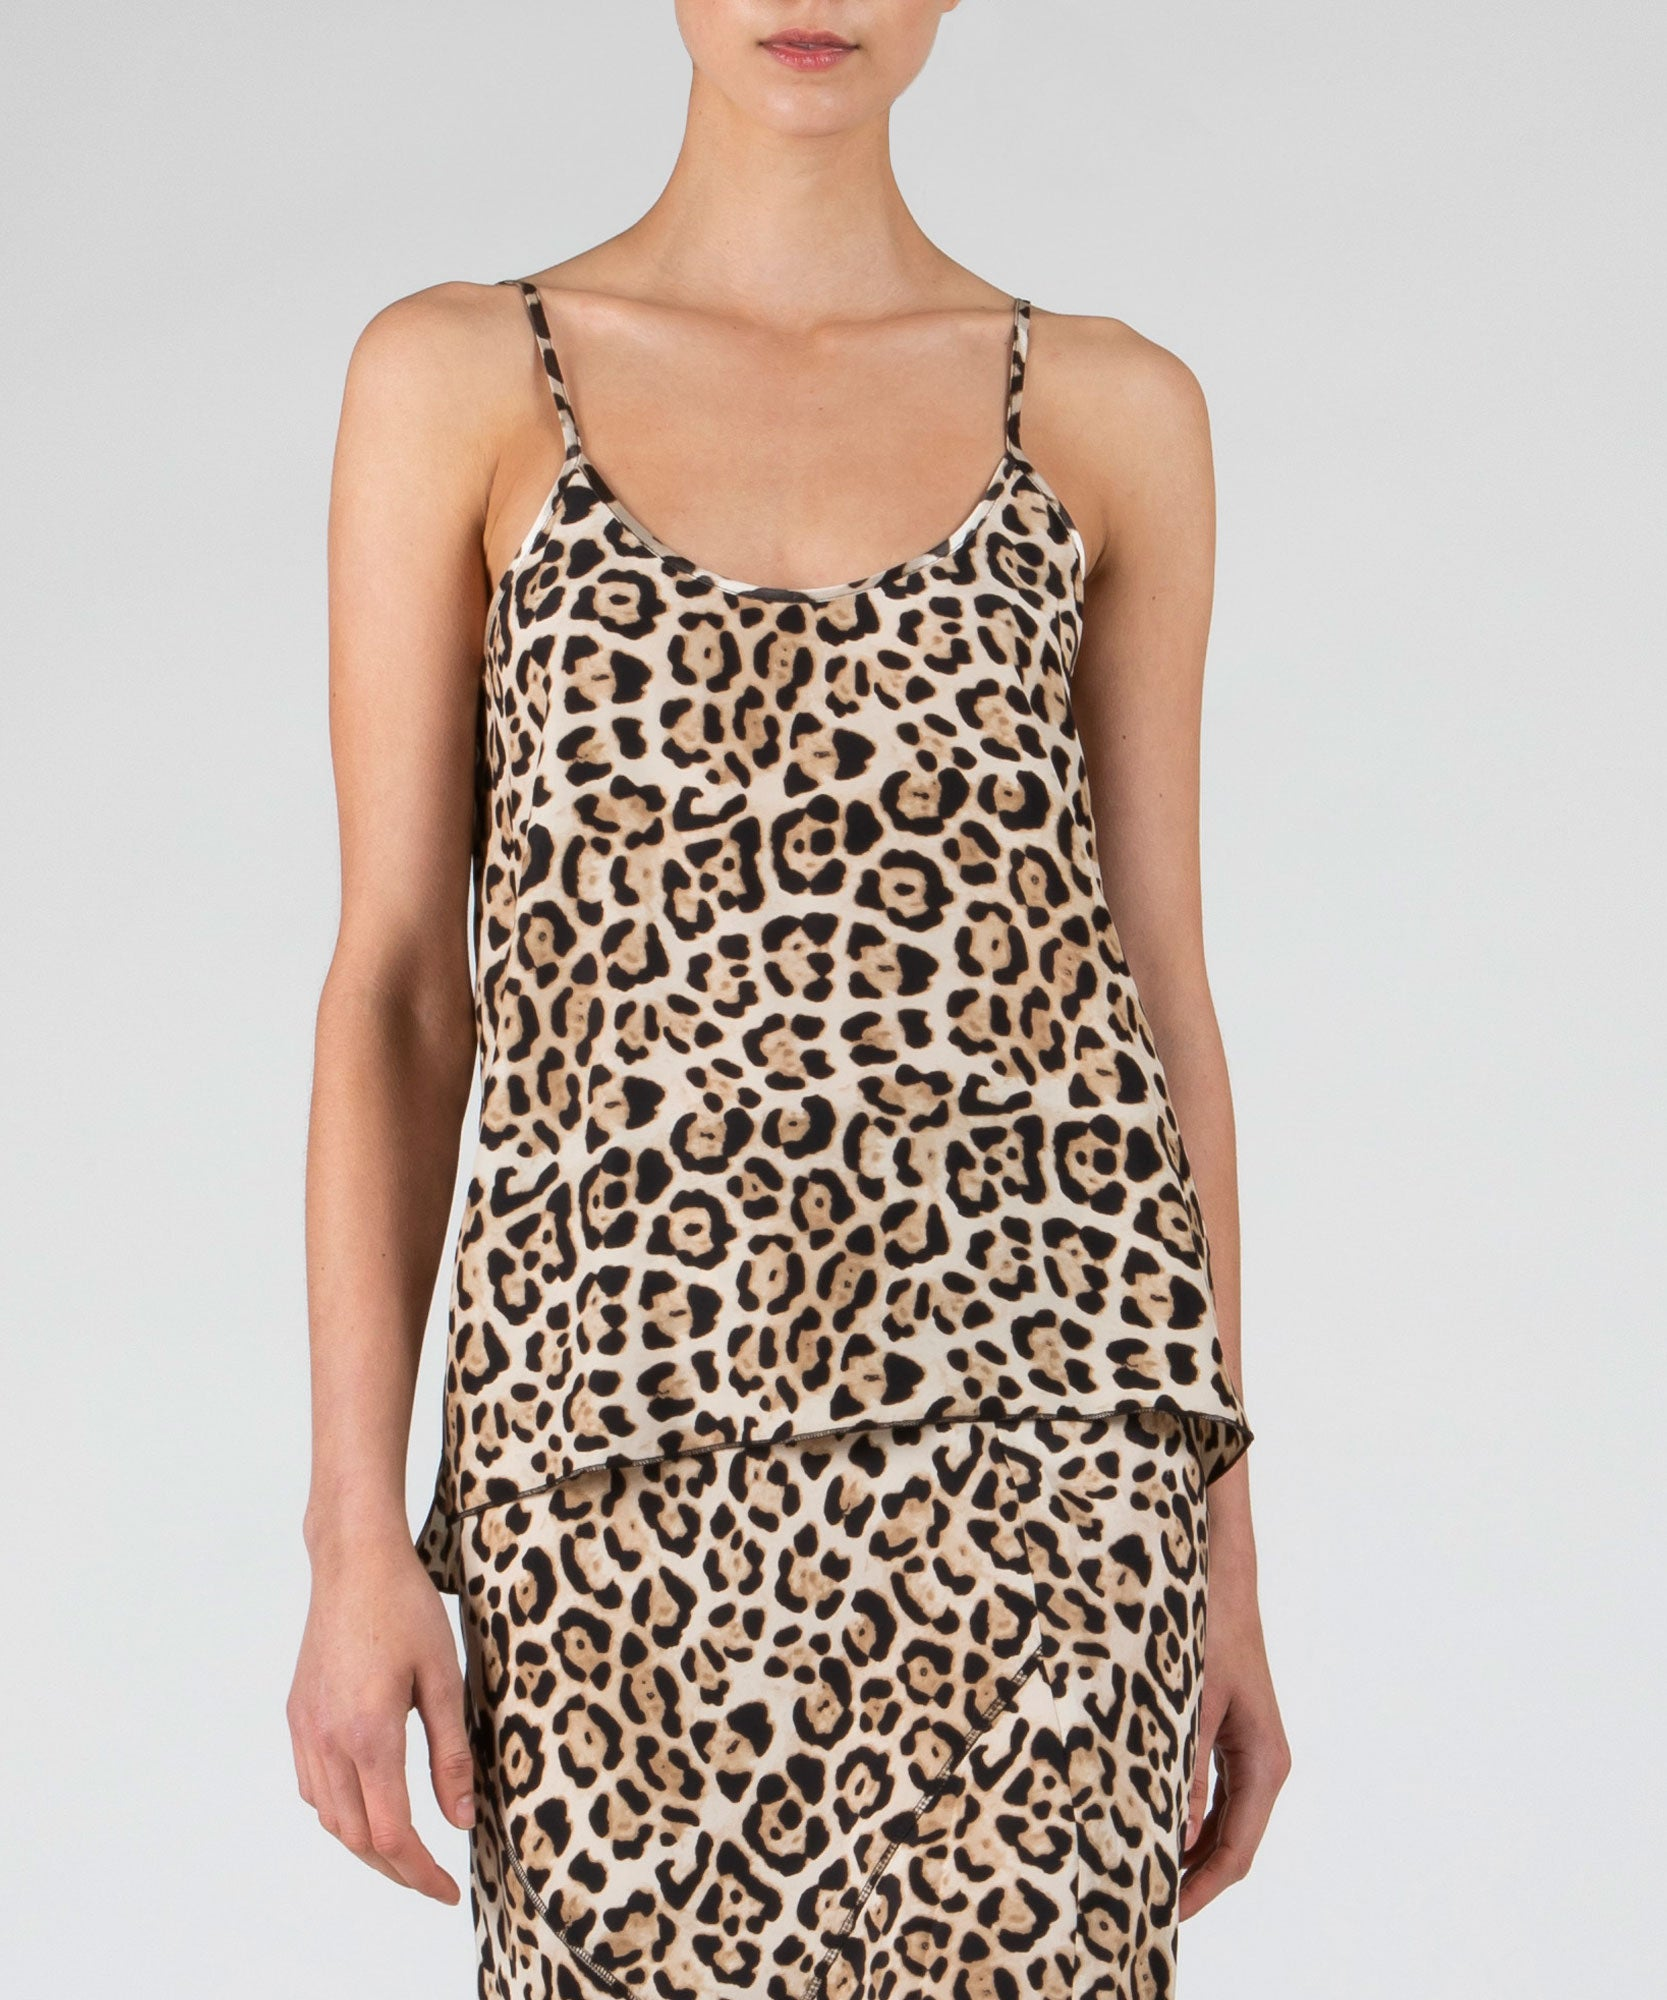 Leopard Silk Cami - Women's Silk Top by ATM Anthony Thomas Melillo